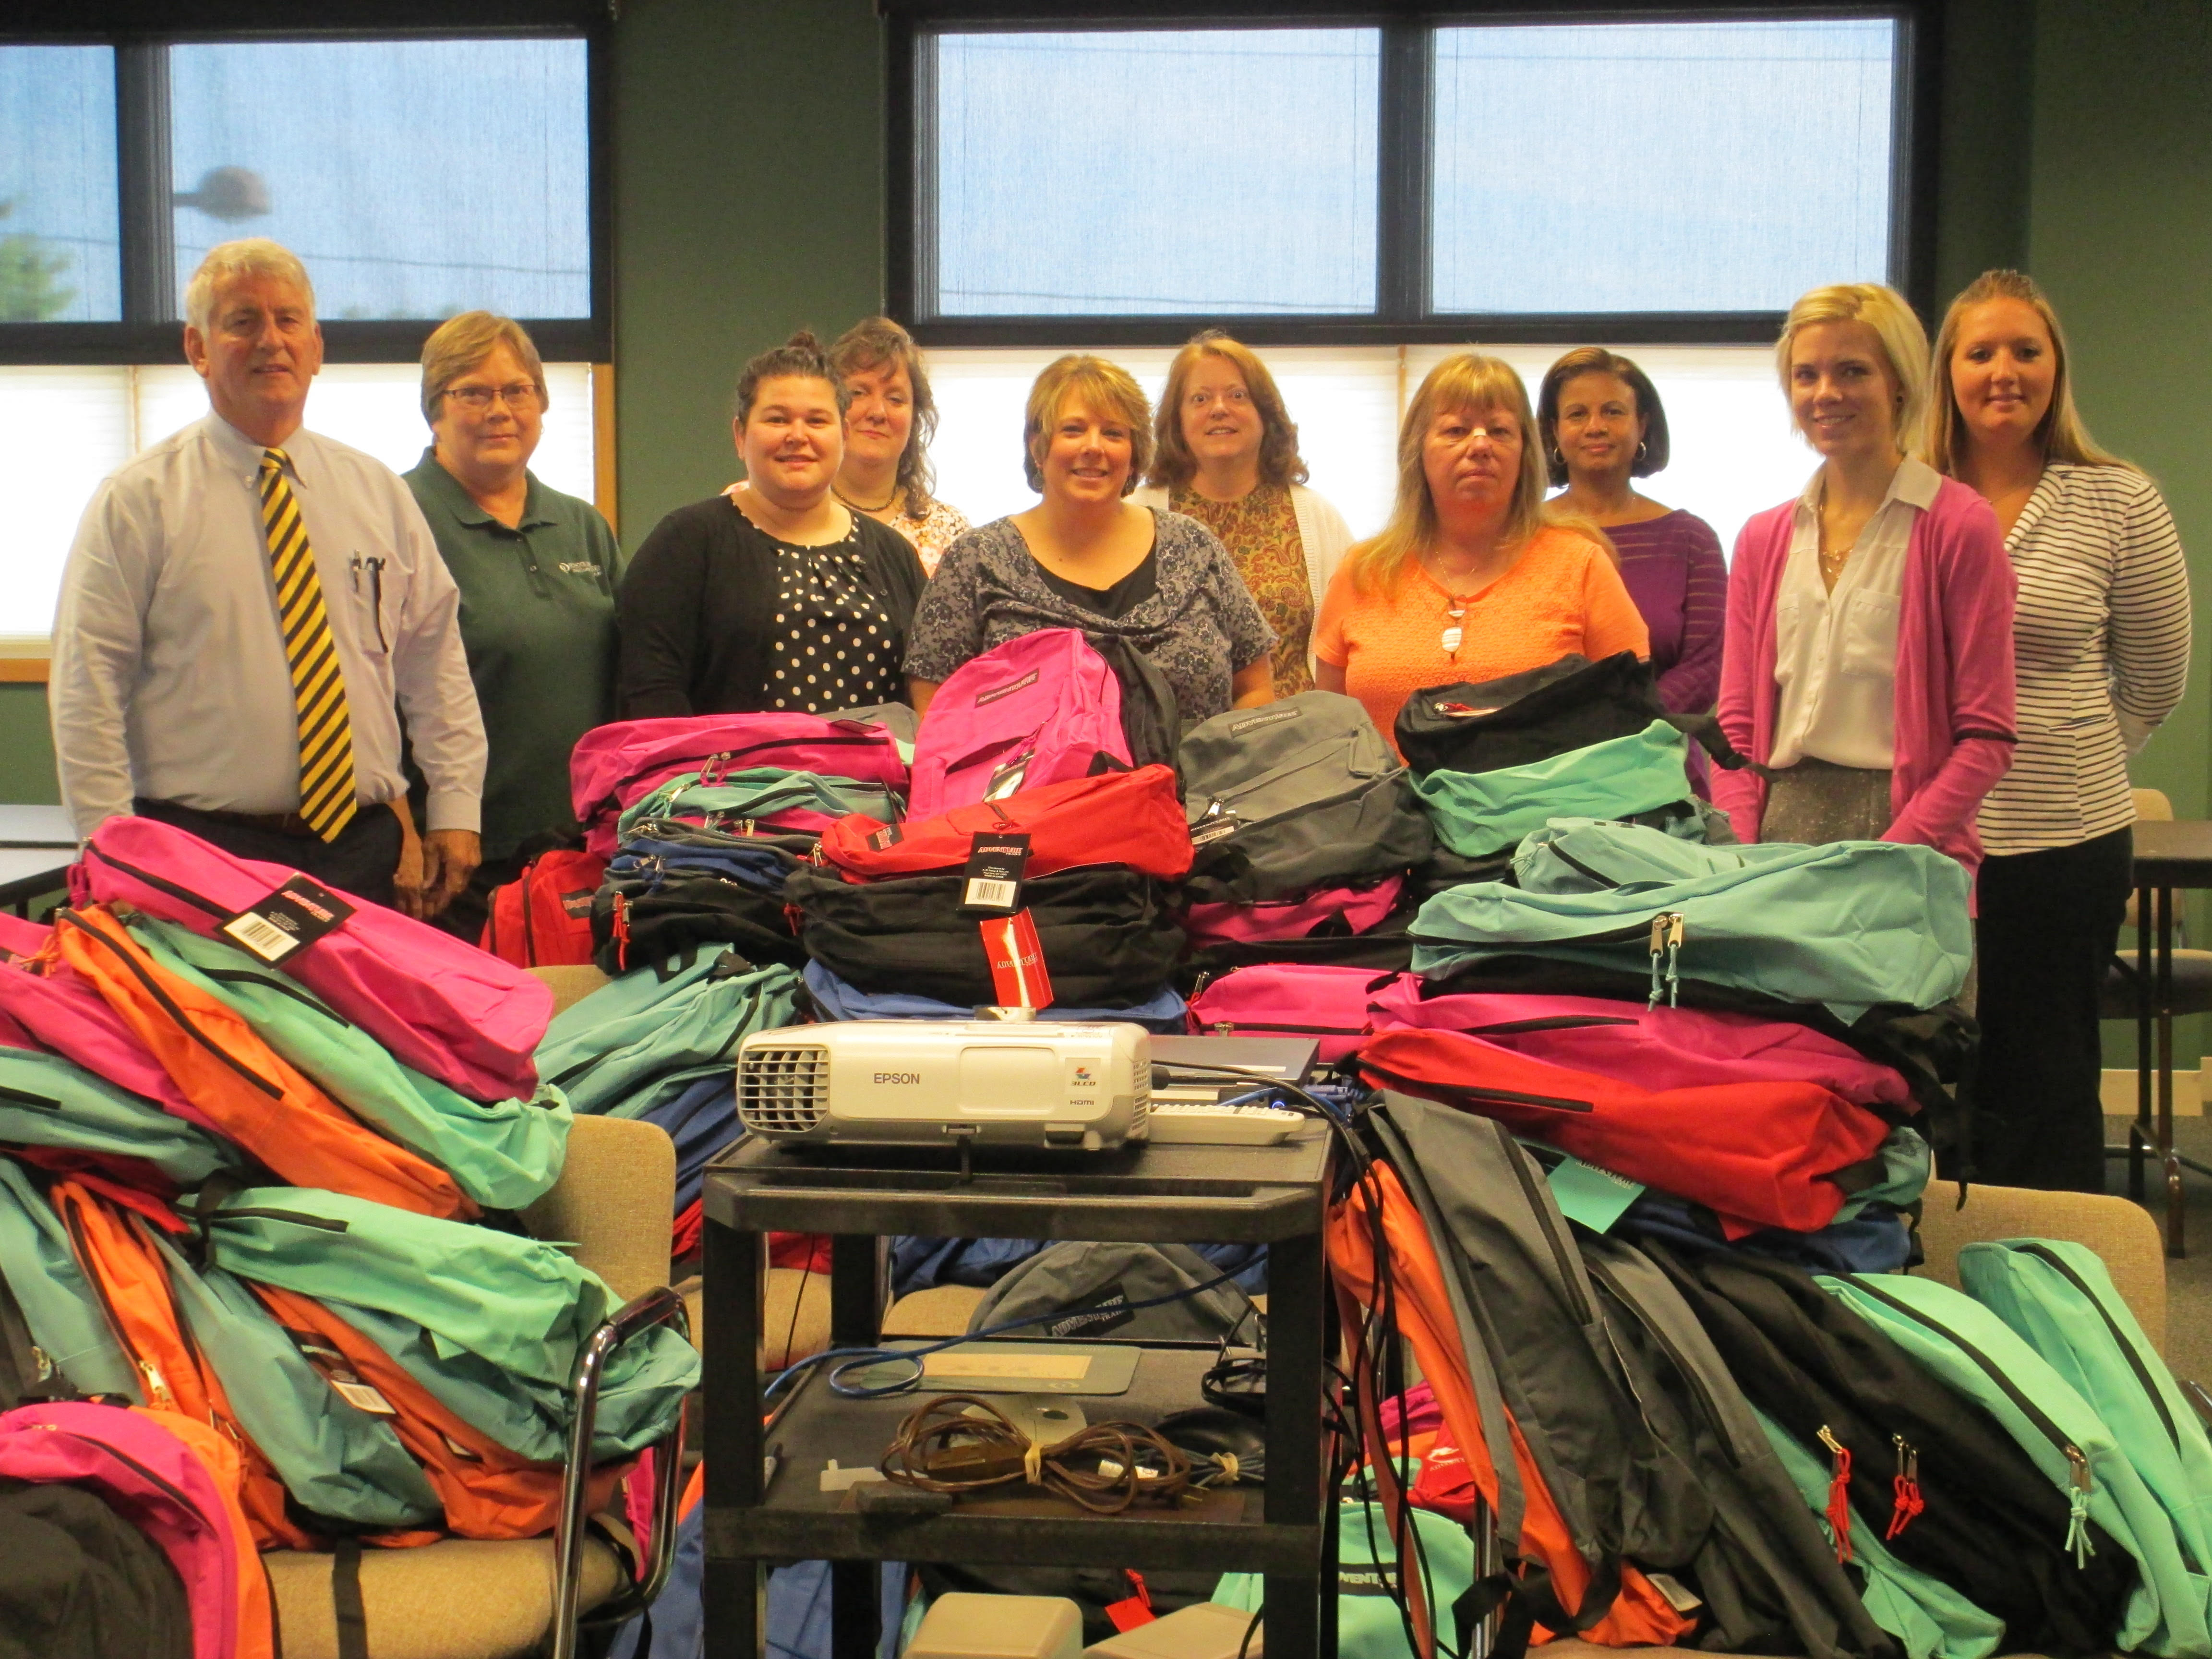 Photo of staff next to stacks of backpacks they just finished stuffing with school supplies.